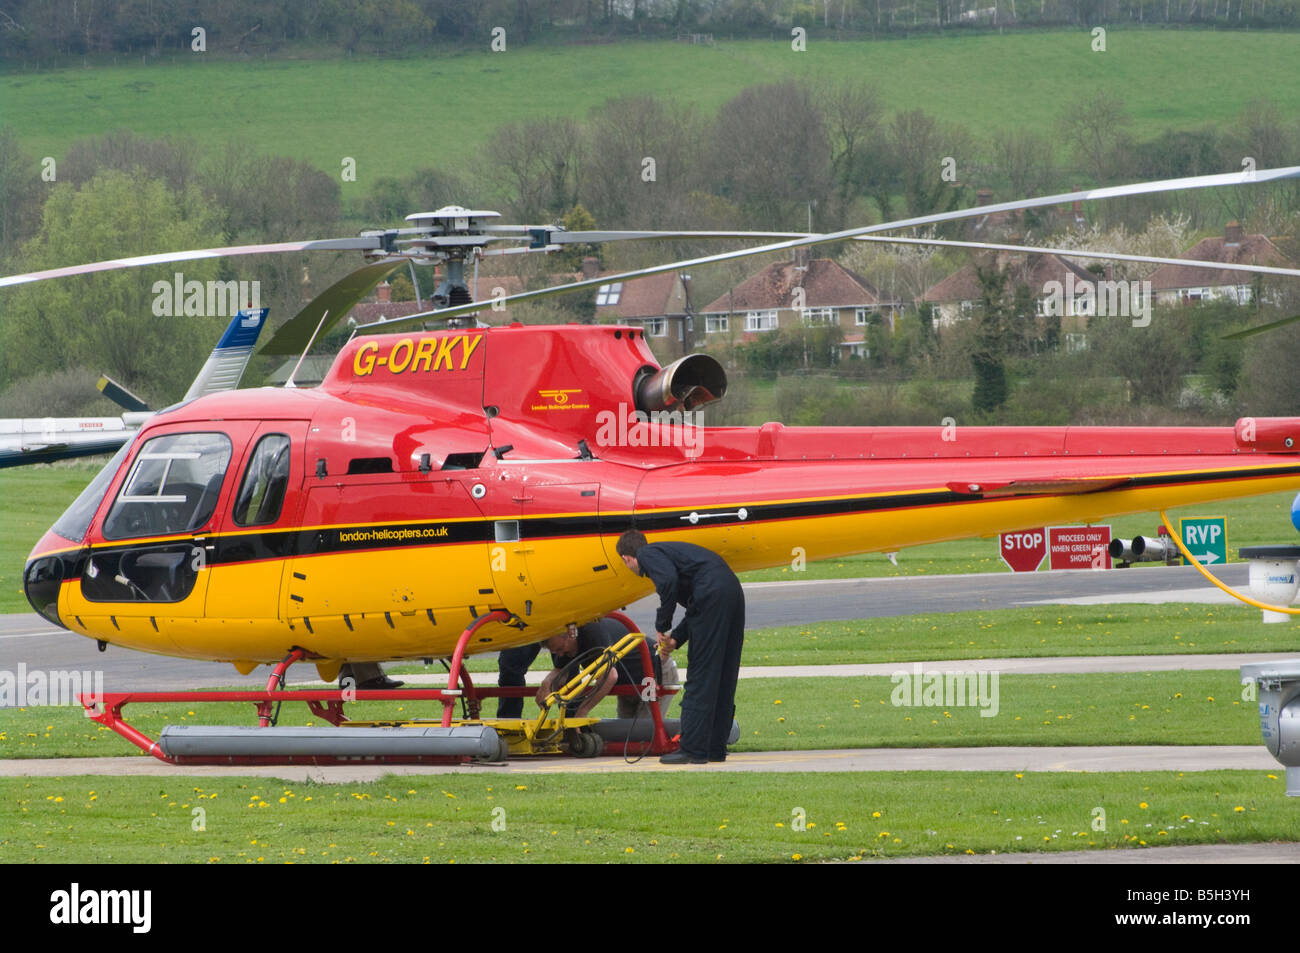 Mechanics Repairing Working On A Red and Yellow Helicopter G ORKY Redhill Aerodrome Surrey UK Helicopters - Stock Image